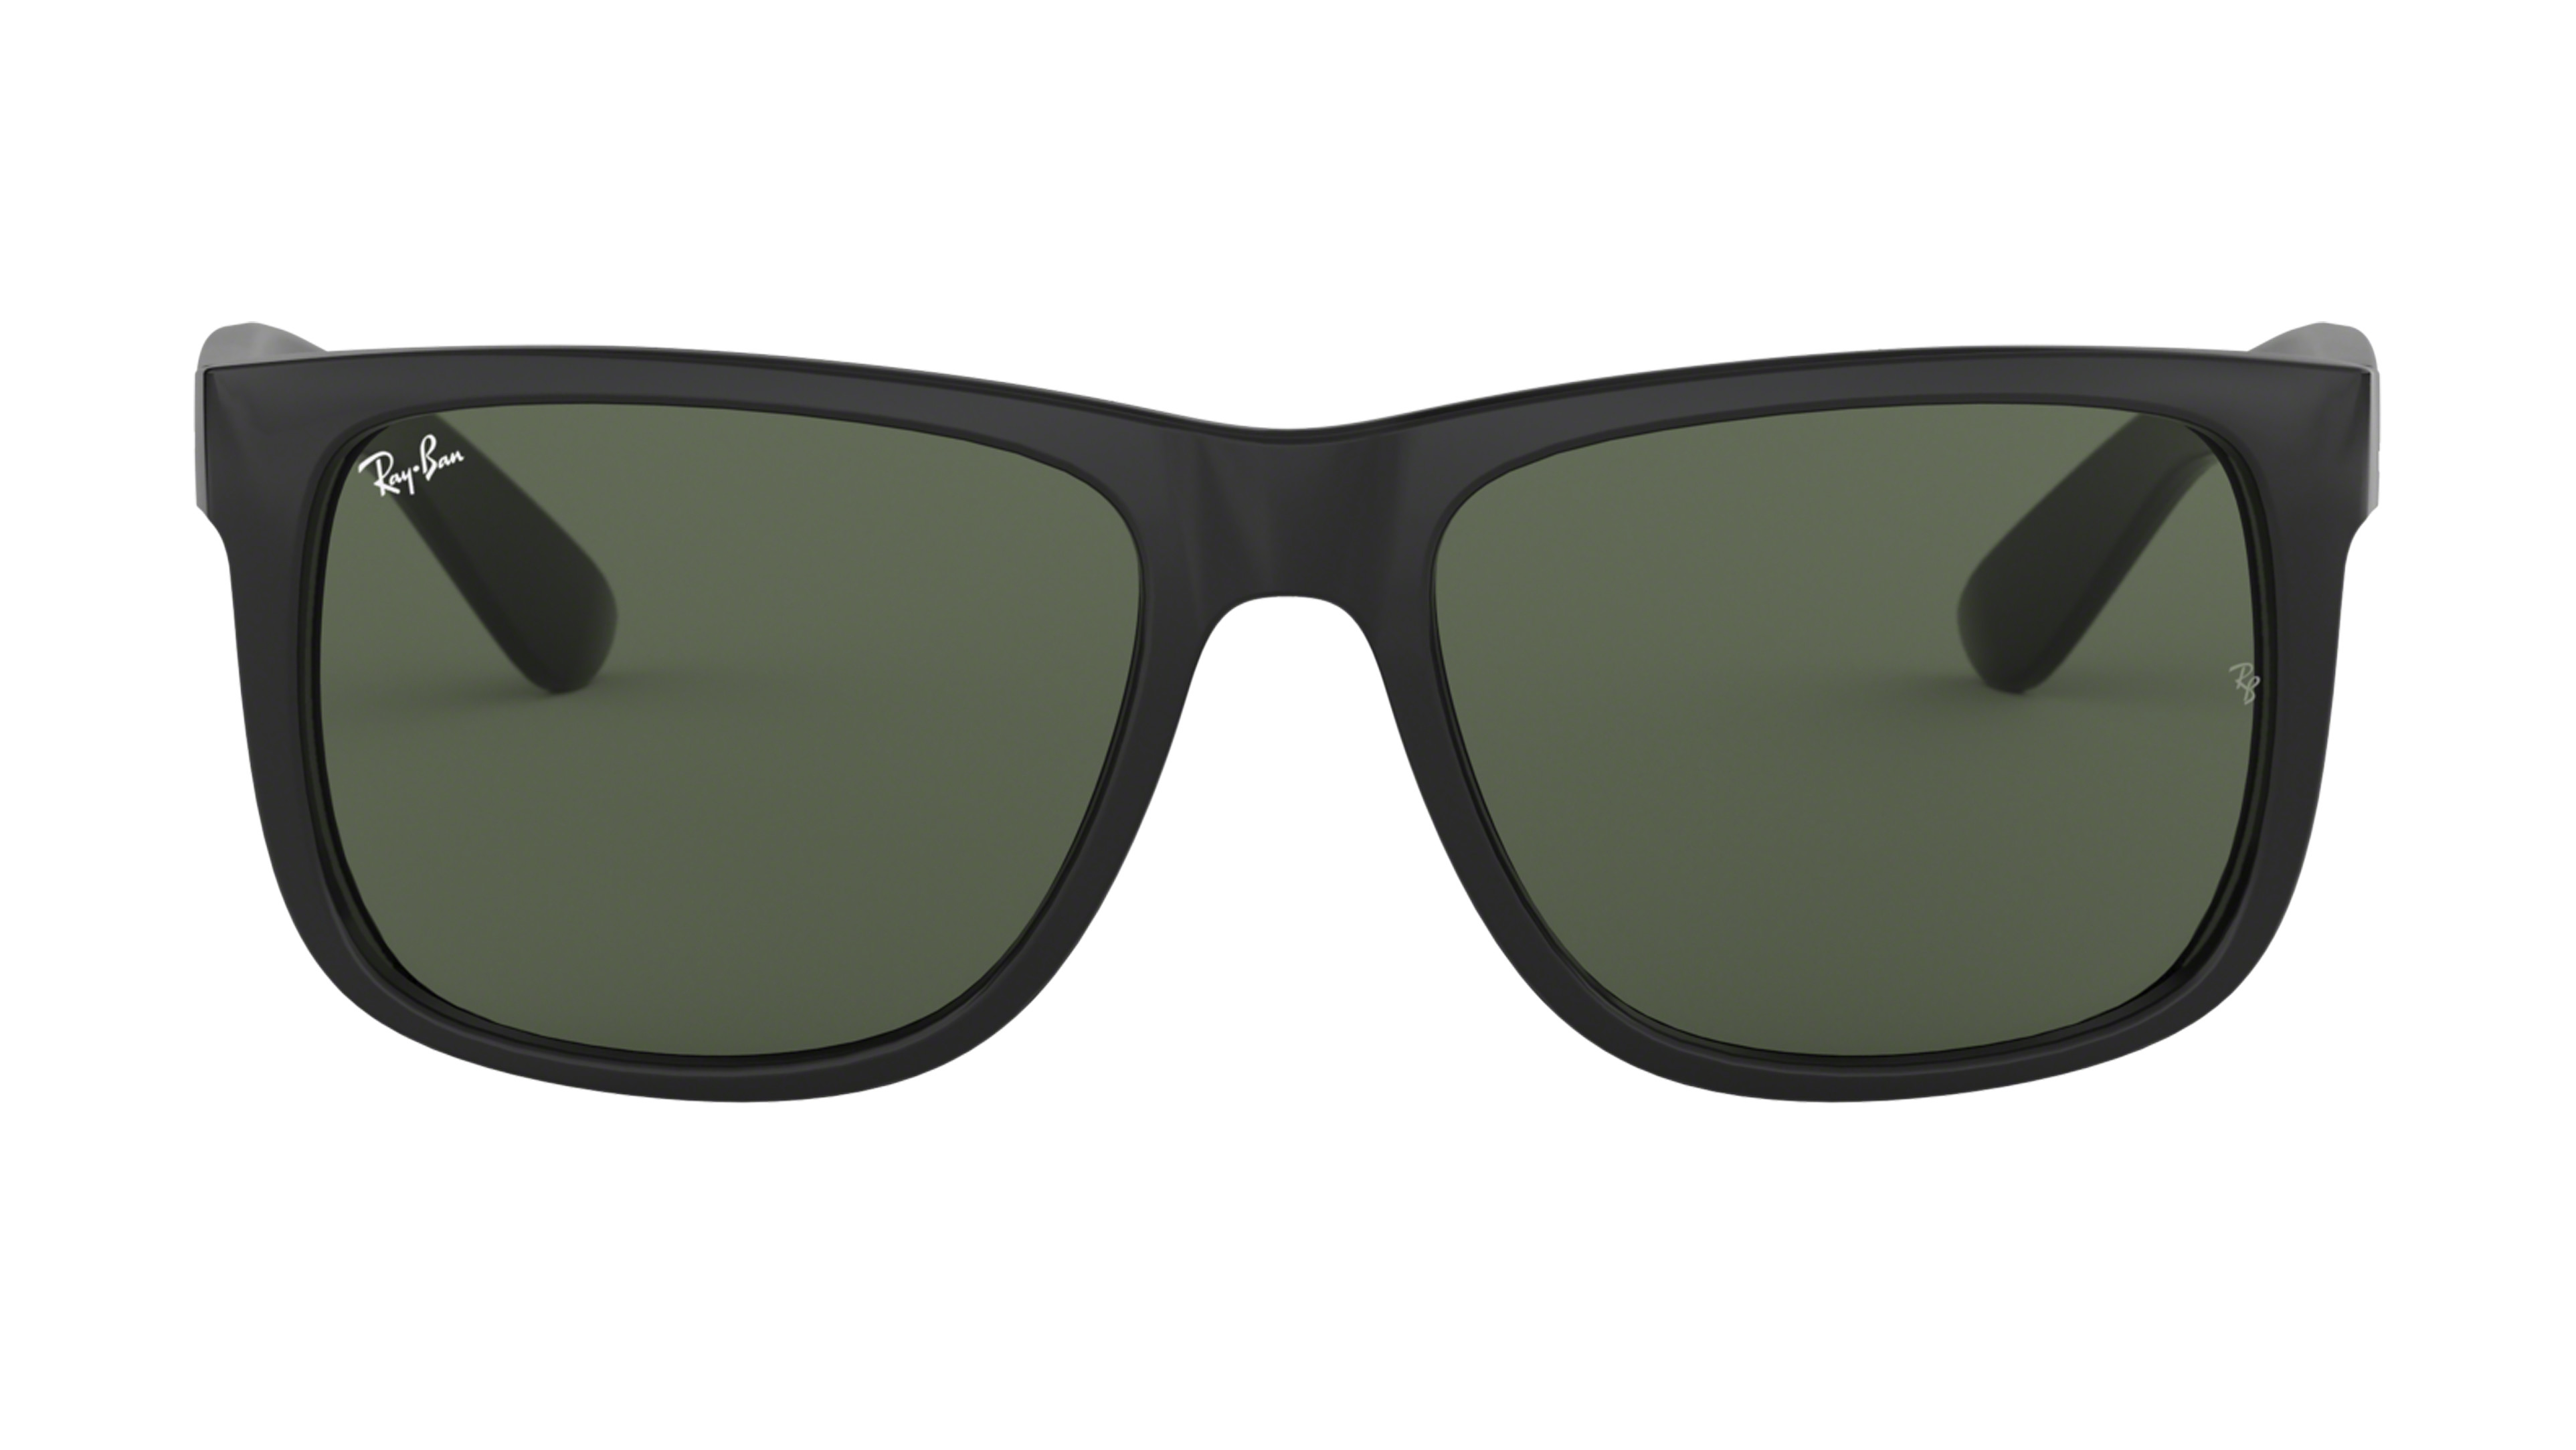 8053672476194-front-Ray-Ban-Sonnenbrille-0RB4165-601-71-Justin